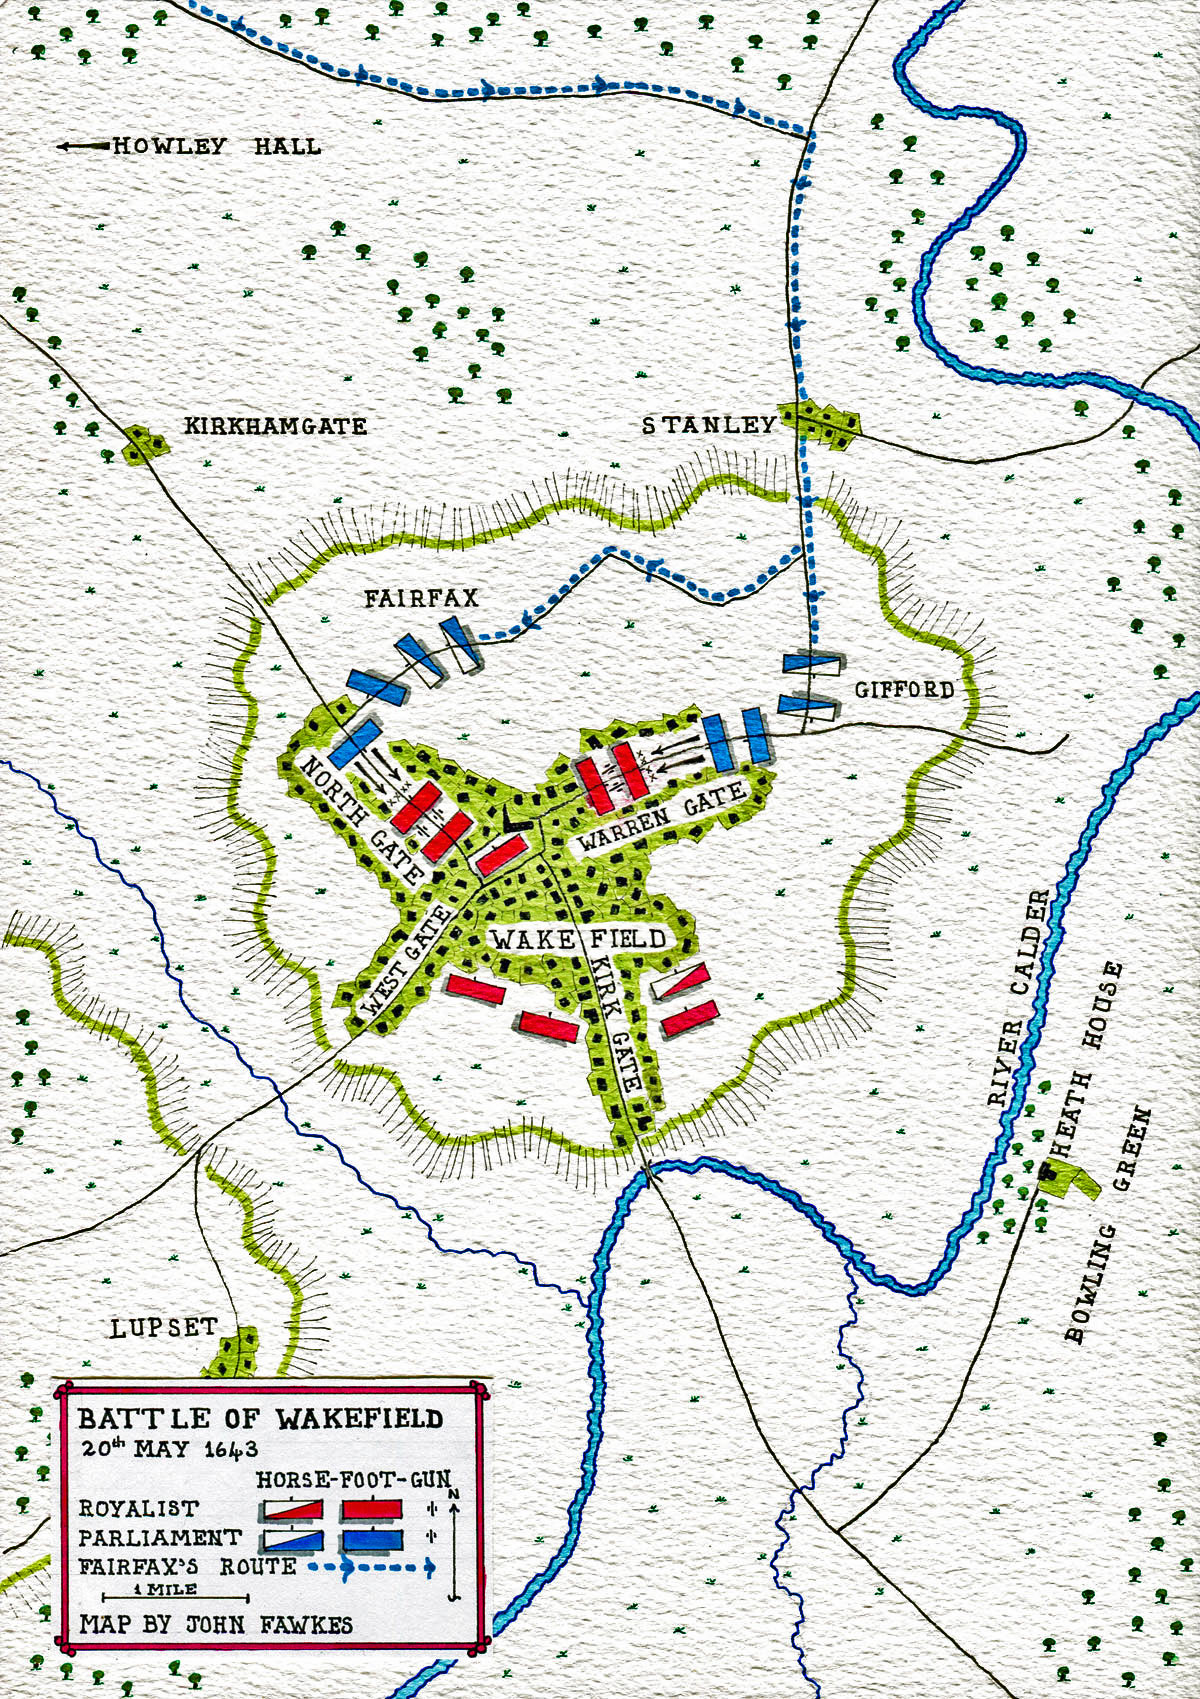 Map of Battle of Wakefield 20th May 1643 in the English Civil War: map by John Fawkes